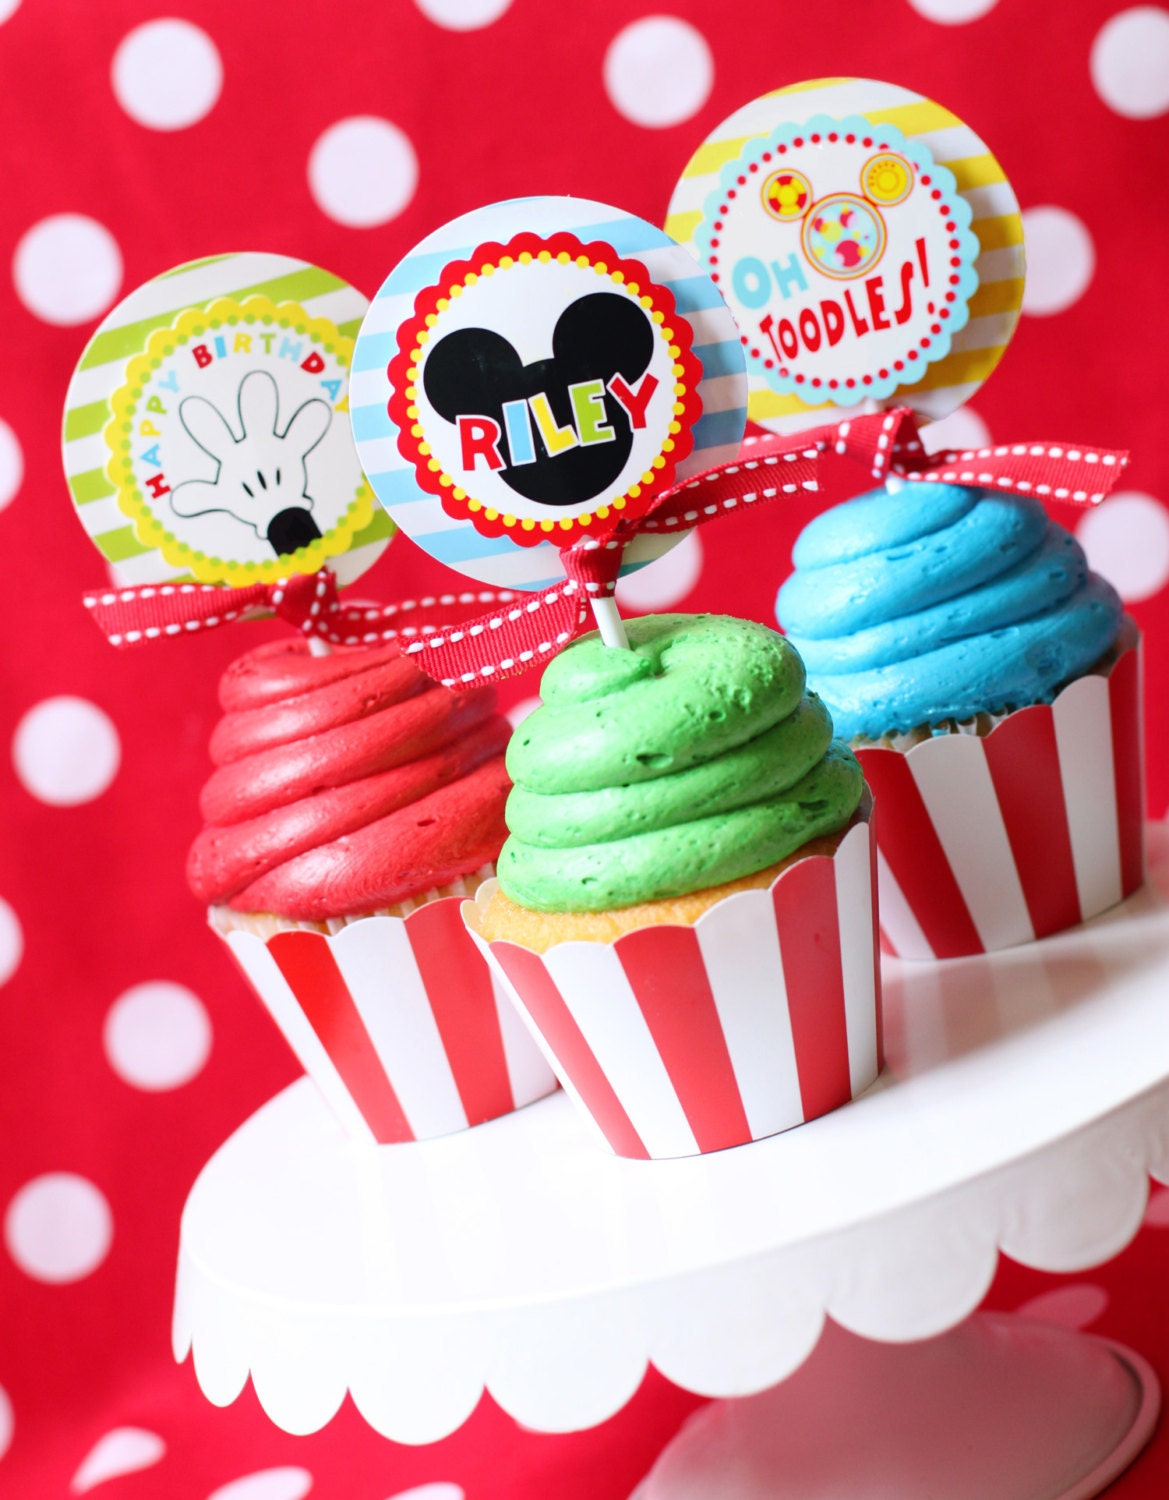 Mickey Mouse Birthday Mickey Mouse Party Cupcake Toppers. Beds For Small Rooms. Girl Party Decorations. Tall Floor Decor. Kids Room Organization. Ottoman Living Room. White Dining Room Sets For Sale. Country Style Dining Room Table Sets. Modern Kitchen Decor